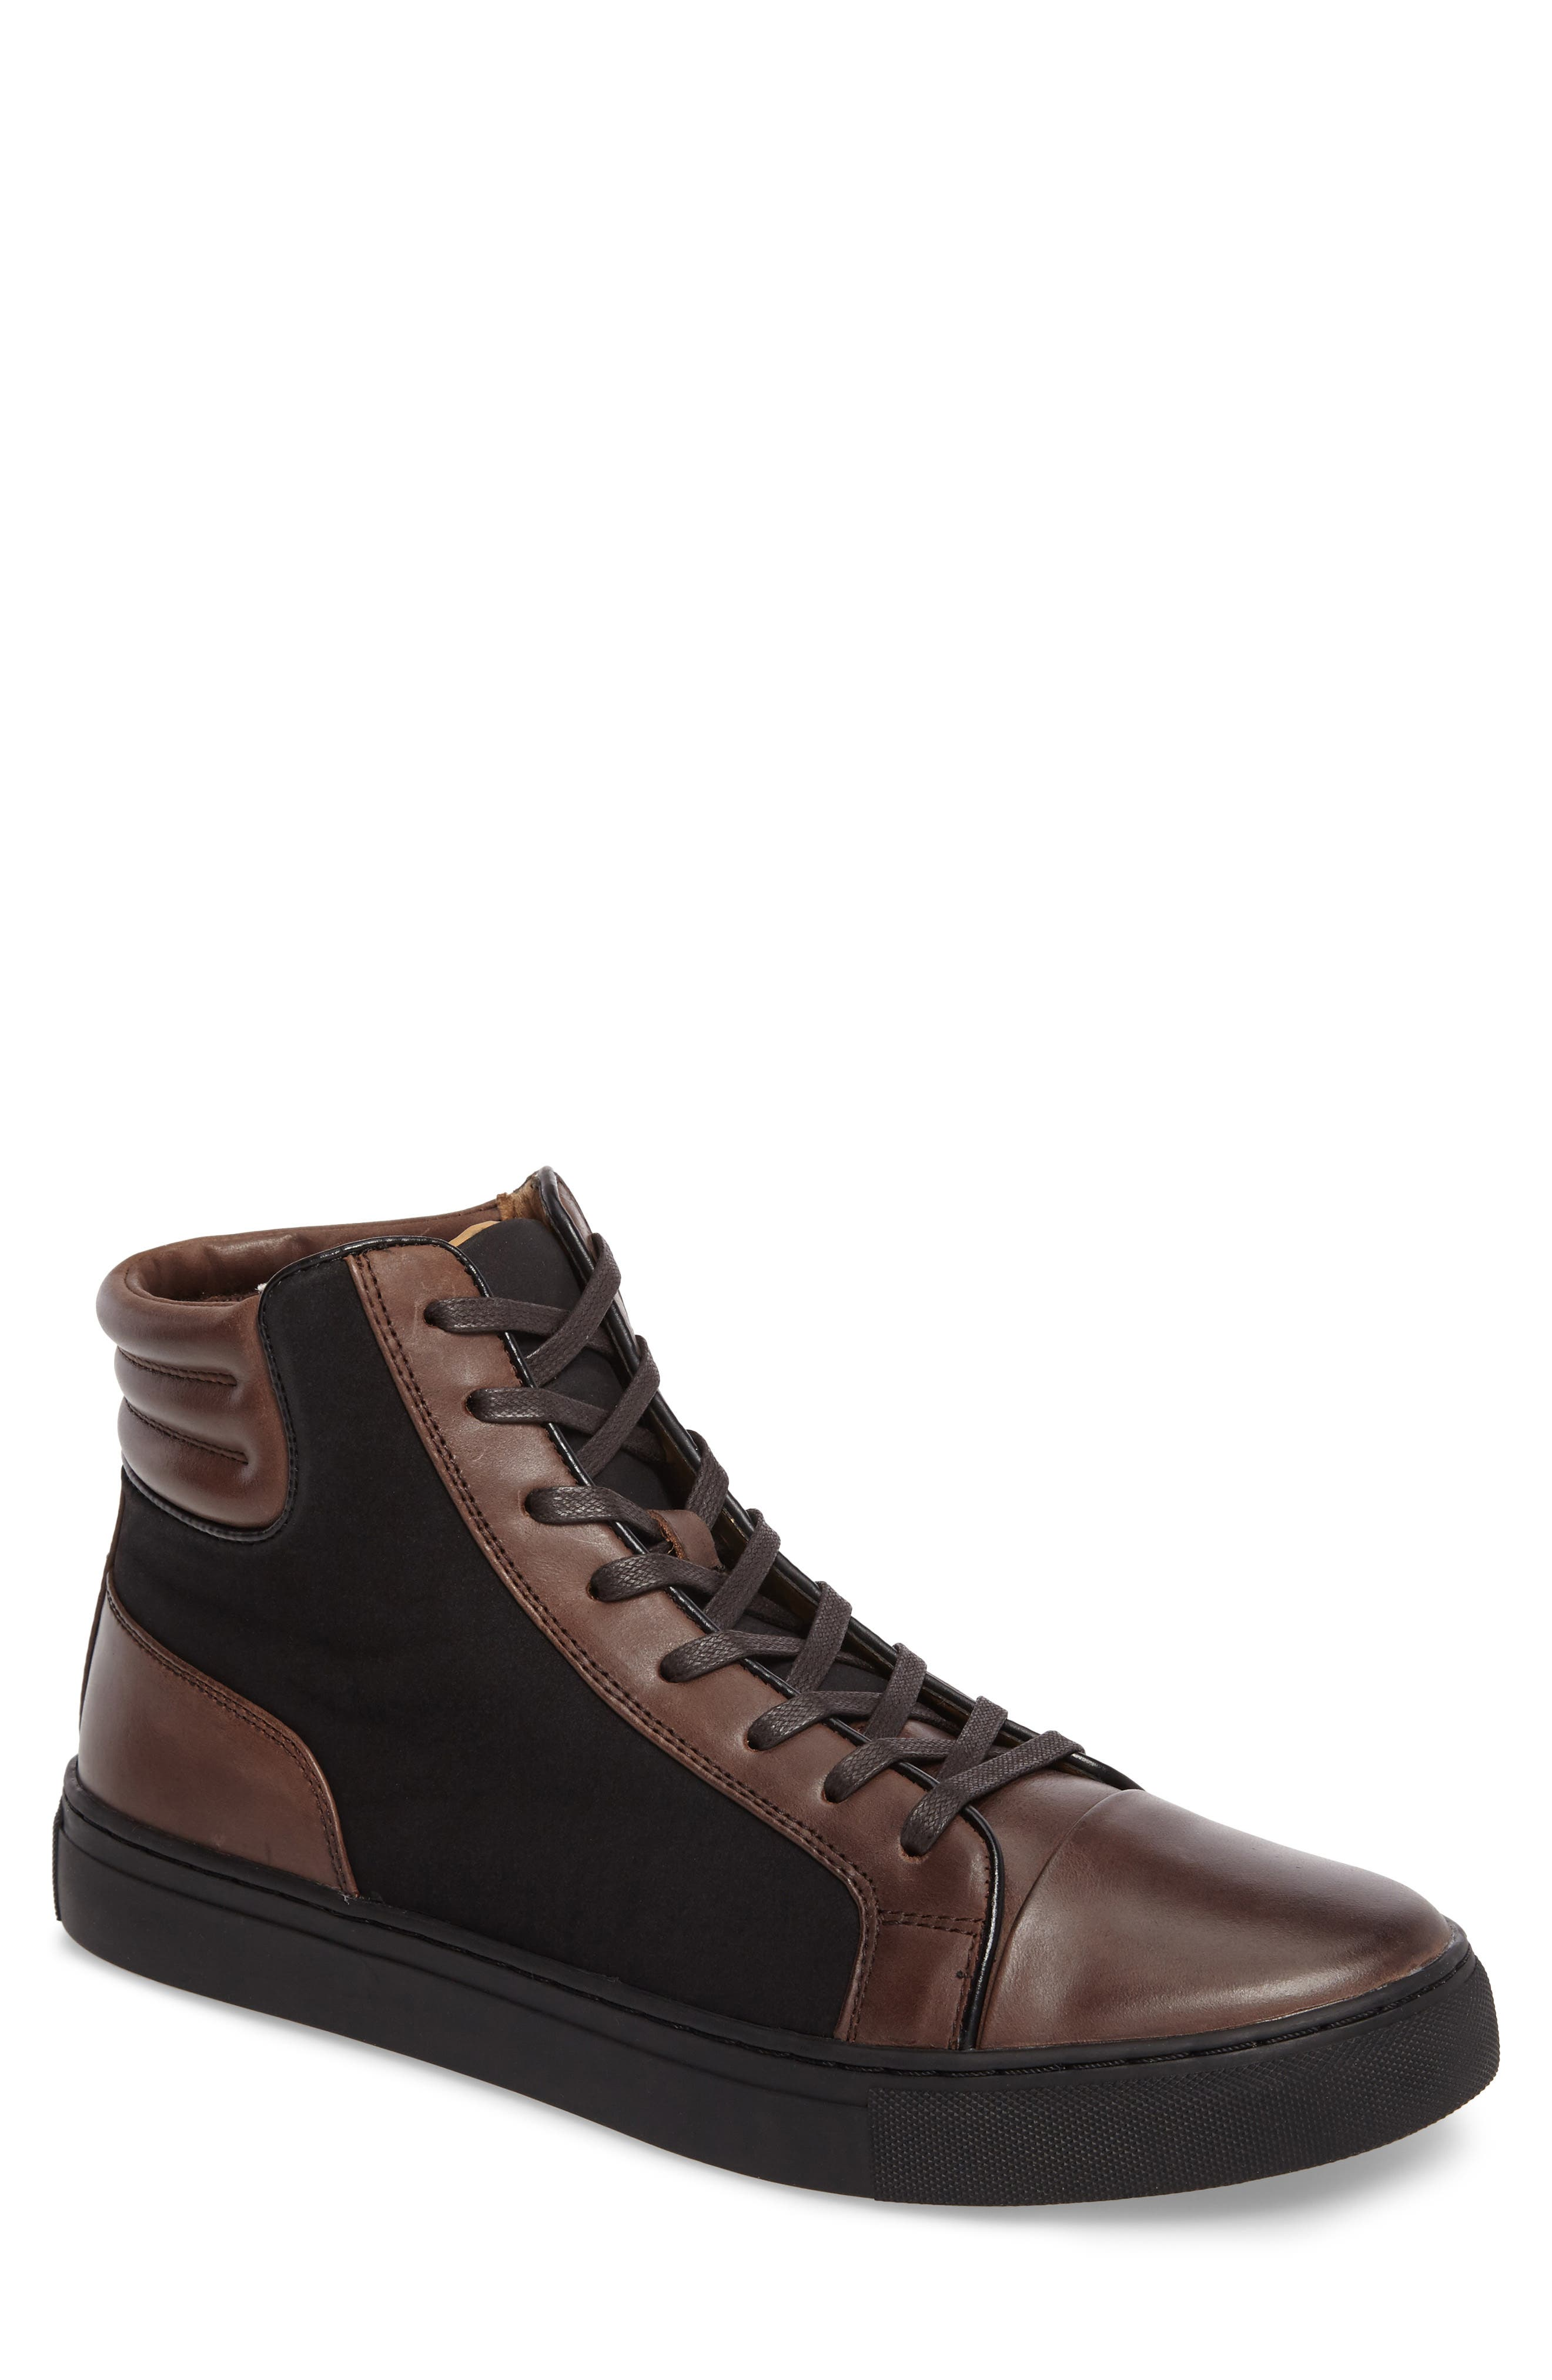 Kenneth Cole Reaction Sneaker,                             Main thumbnail 1, color,